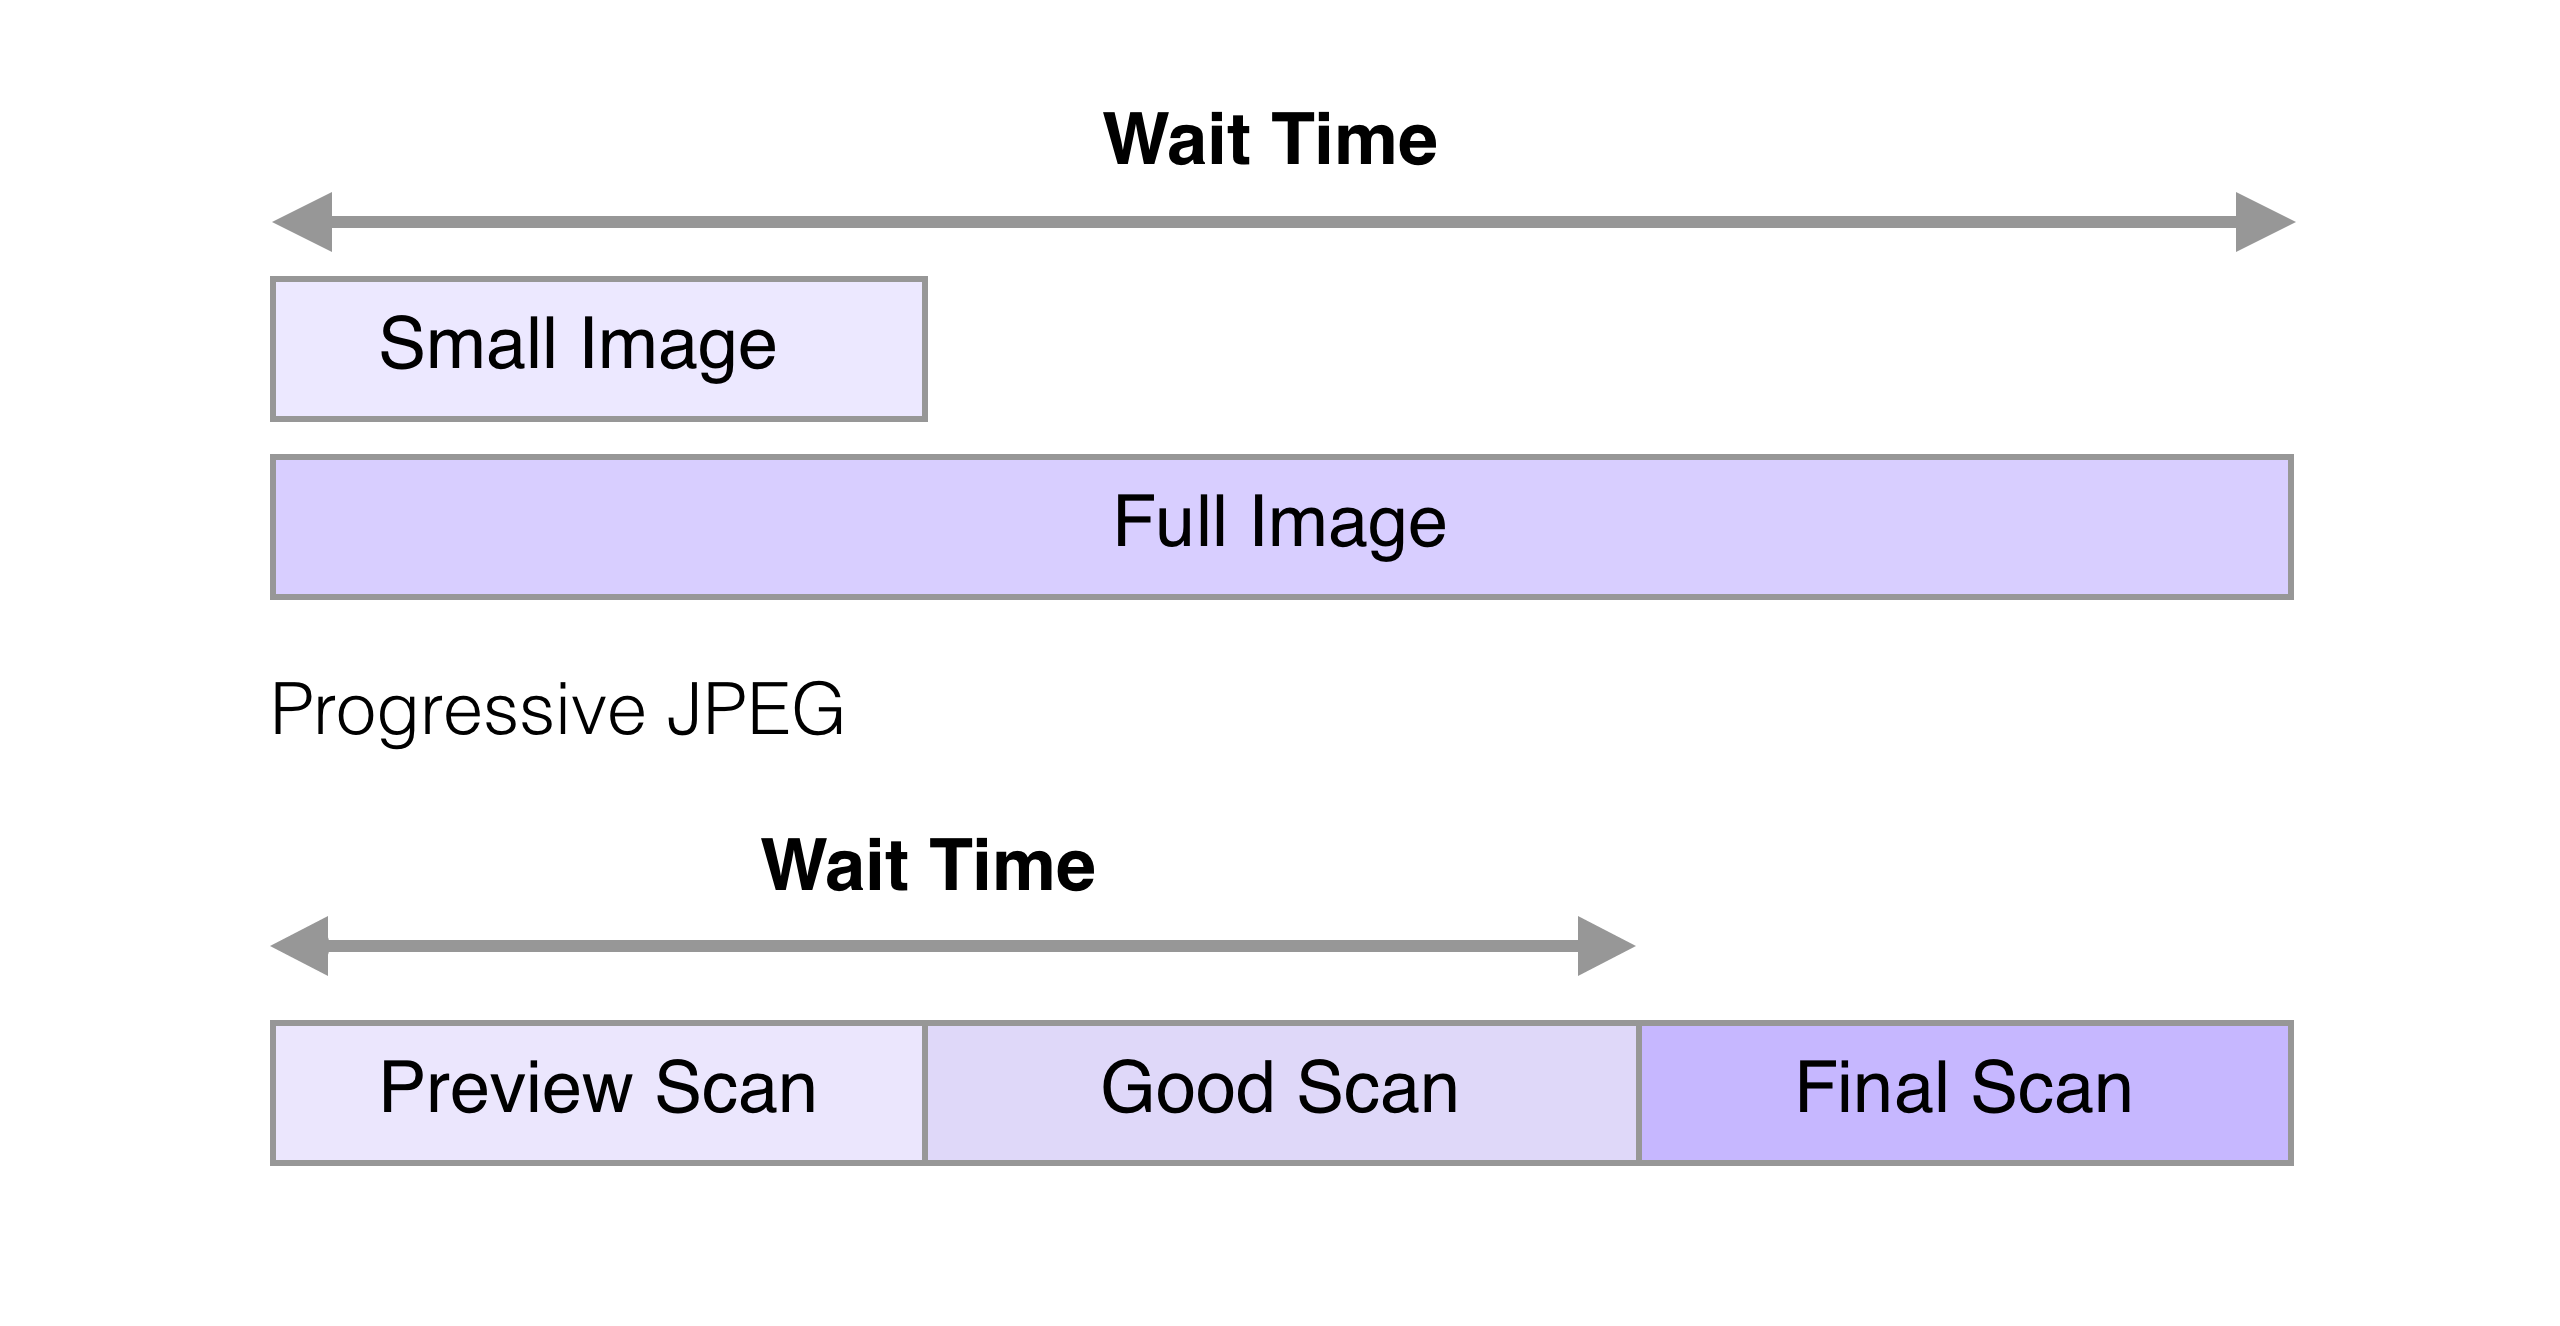 Jpeg versus png. Automating image optimization web